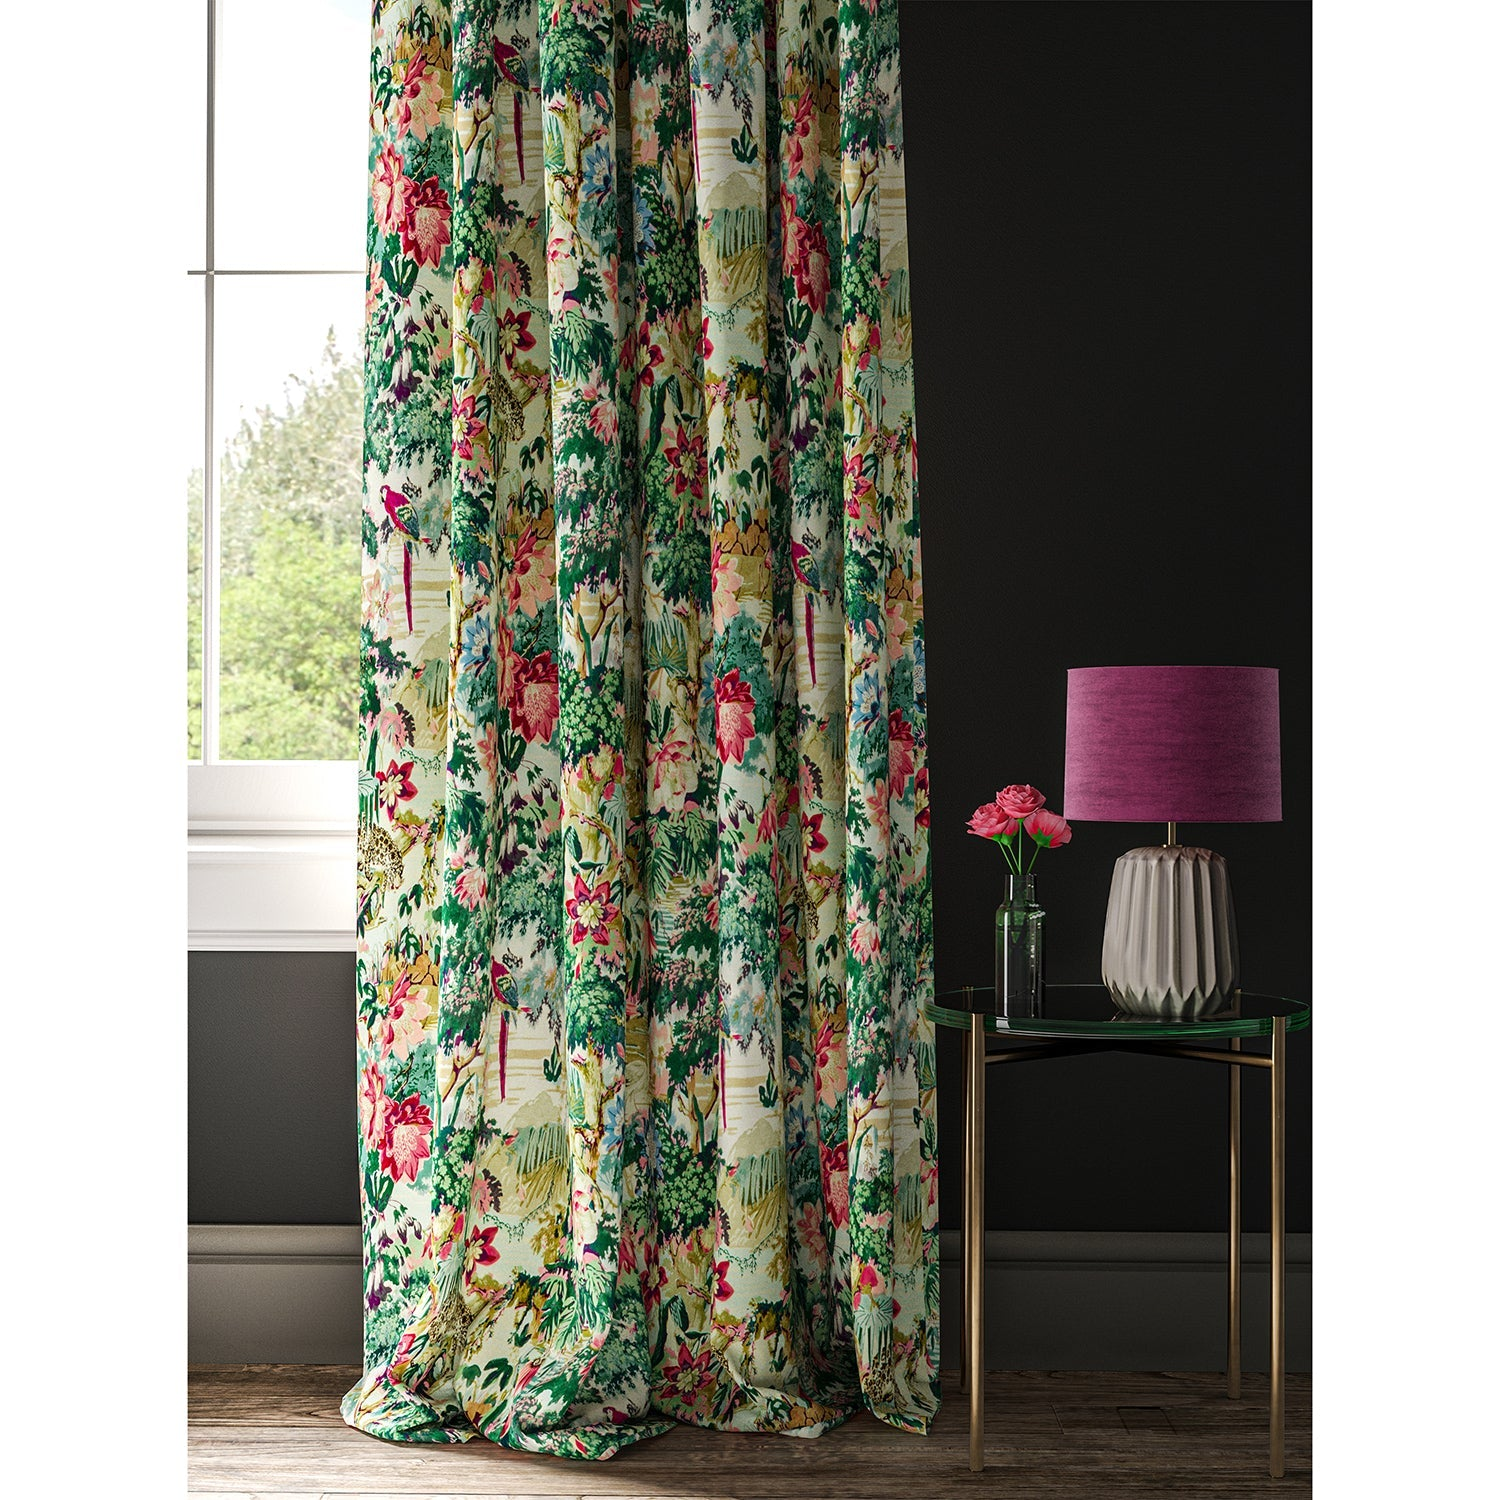 Velvet curtain with a tropical, exotic jungle scene